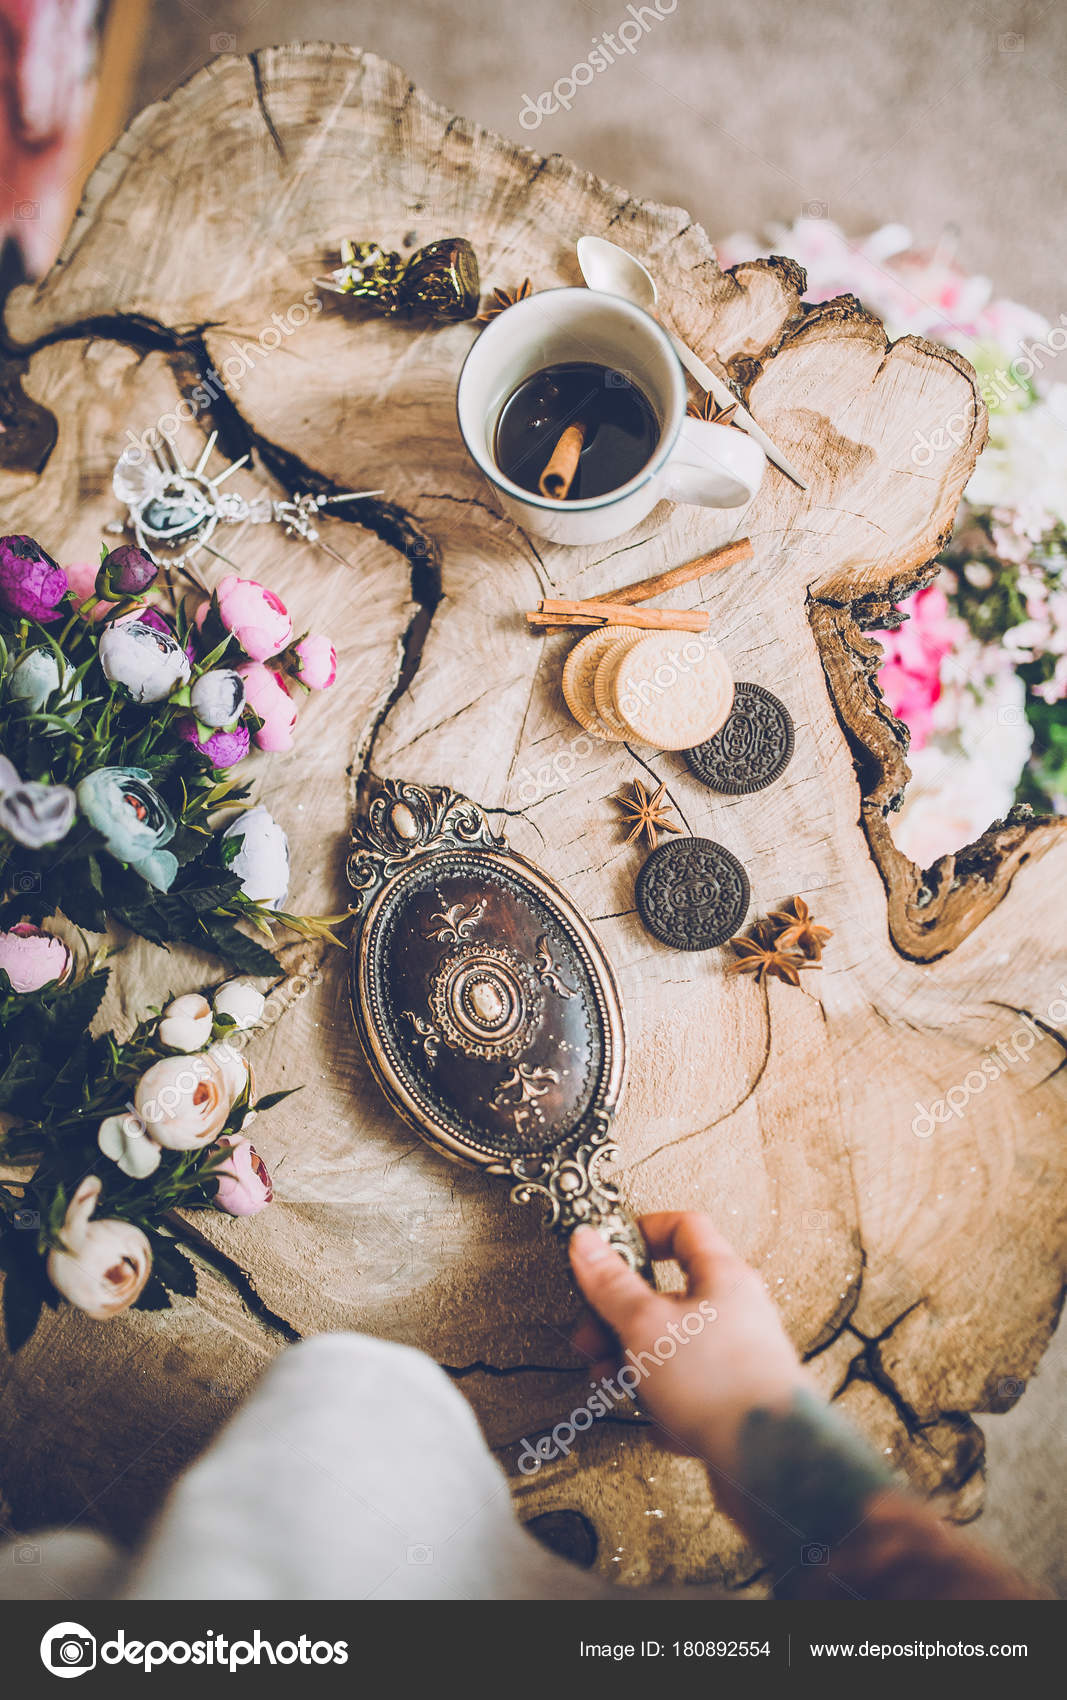 Charmant Close Up Of Human Hand With Tattoo Holding Beautiful Vintage Mirror Near  Spring Flowers U2014 Photo By KristinaPonomareva